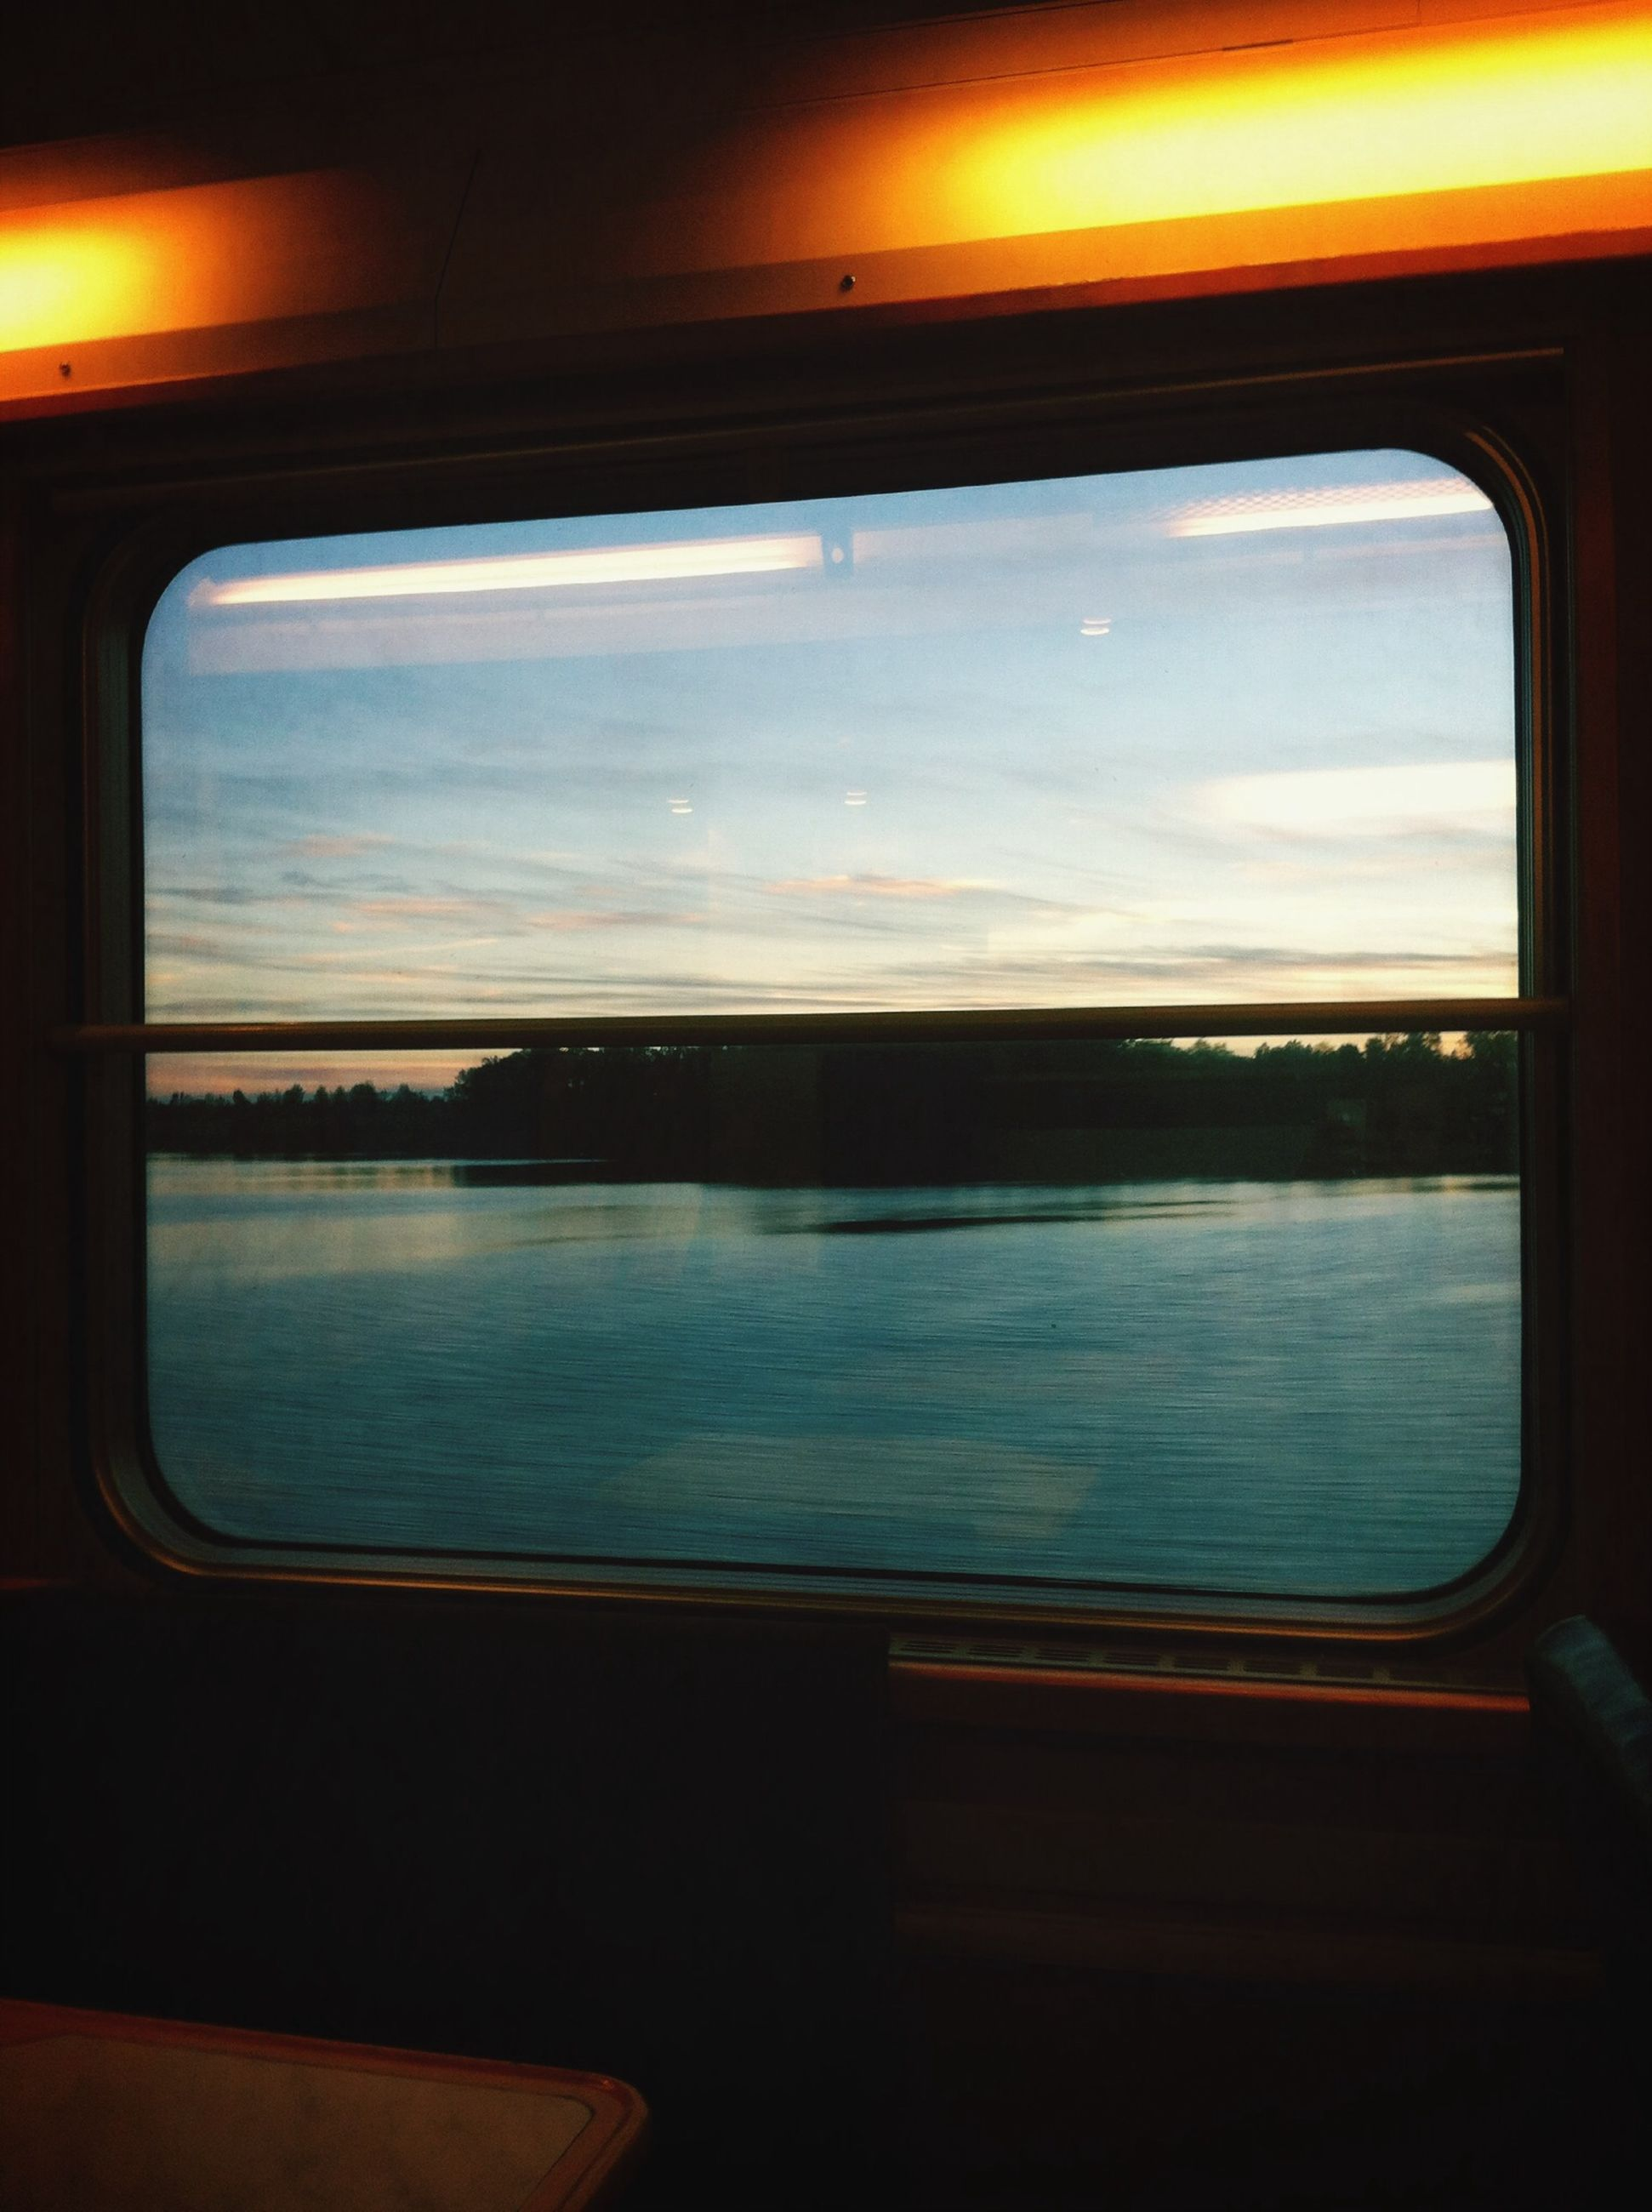 transportation, vehicle interior, window, mode of transport, sunset, transparent, indoors, glass - material, water, sky, sea, travel, reflection, journey, scenics, looking through window, nautical vessel, nature, car, airplane